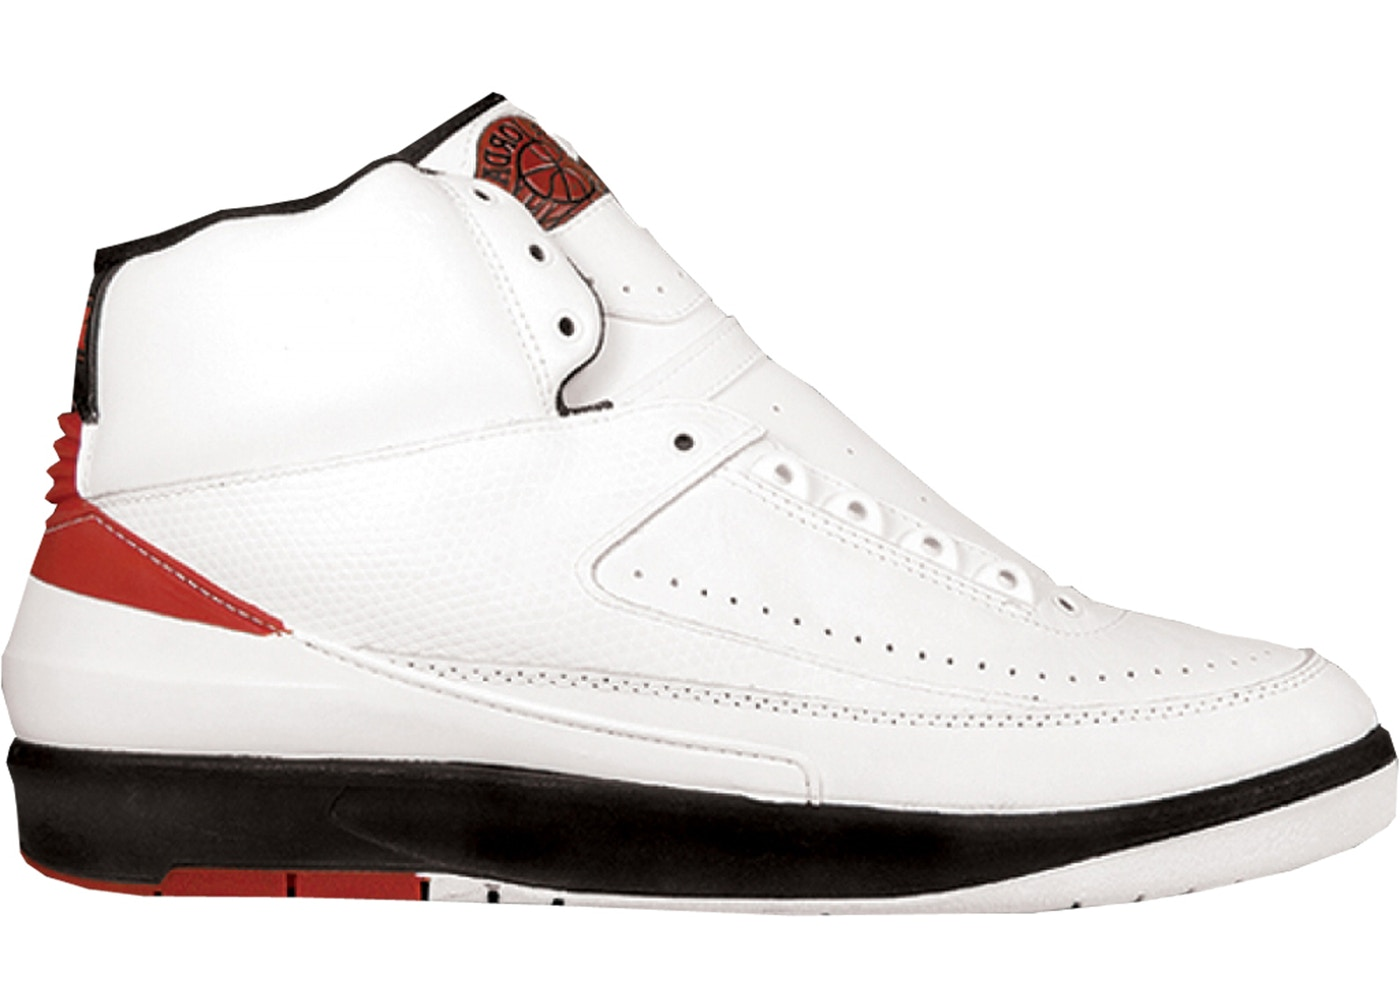 ef4388d21036 Jordan 2 Retro Chicago 1994 - 130235-161